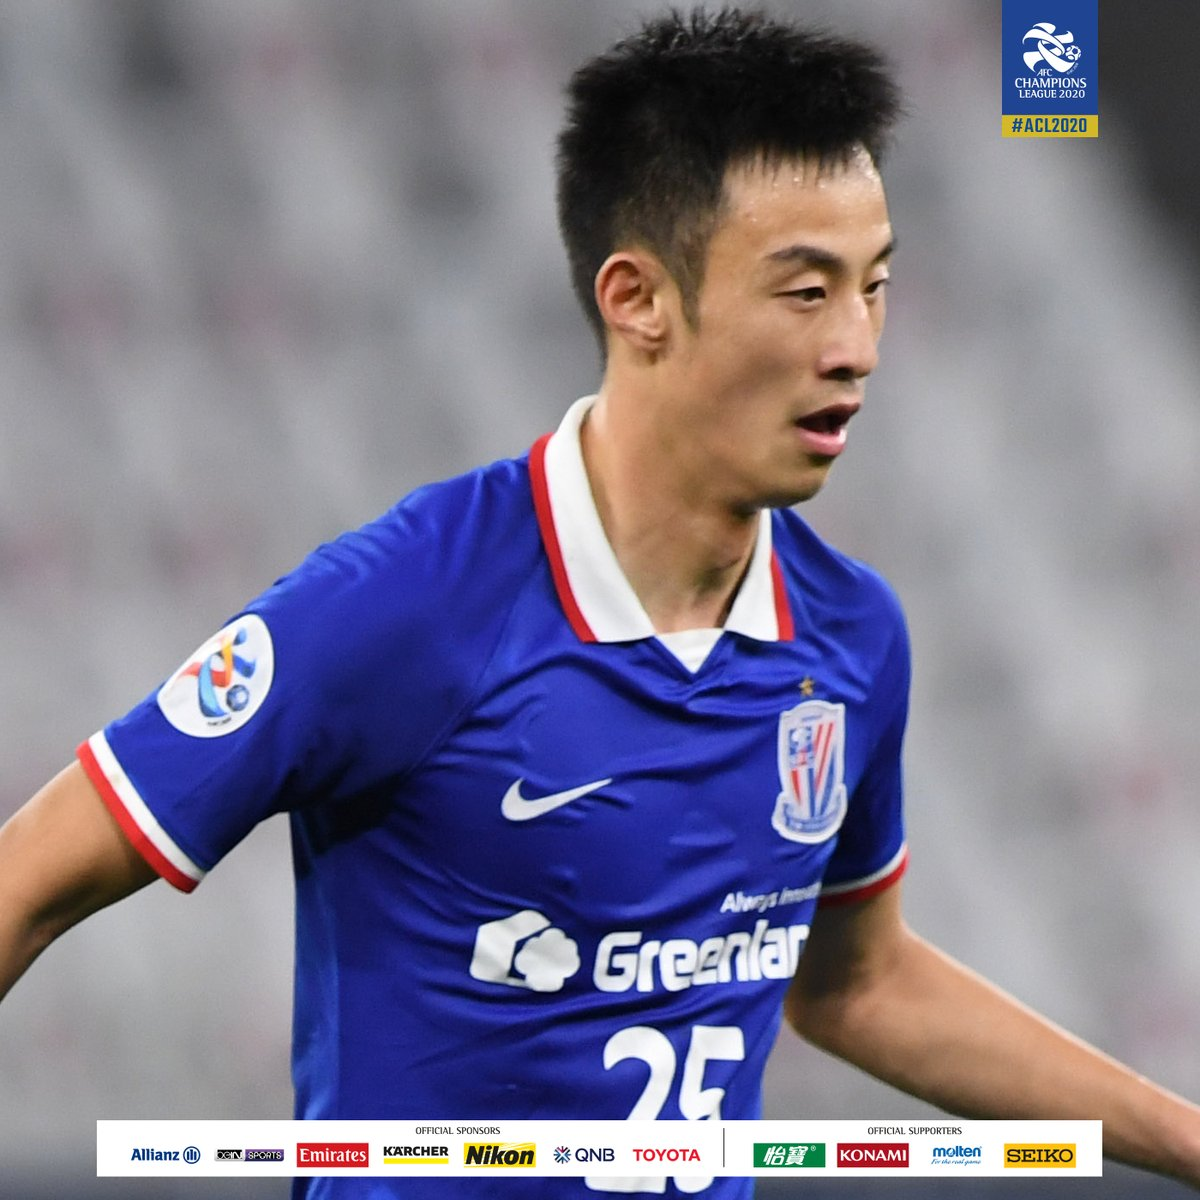 🔹 Shanghai Shenhua defeated Perth Glory 2-1 when the sides met 12 days ago.  🔹 Perth Glory aiming to pick up first-ever #ACL points after 4️⃣ straight losses.   🔹 Shanghai Shenhua looking to avoid back-to-back #ACL defeats for the first time since 2011.